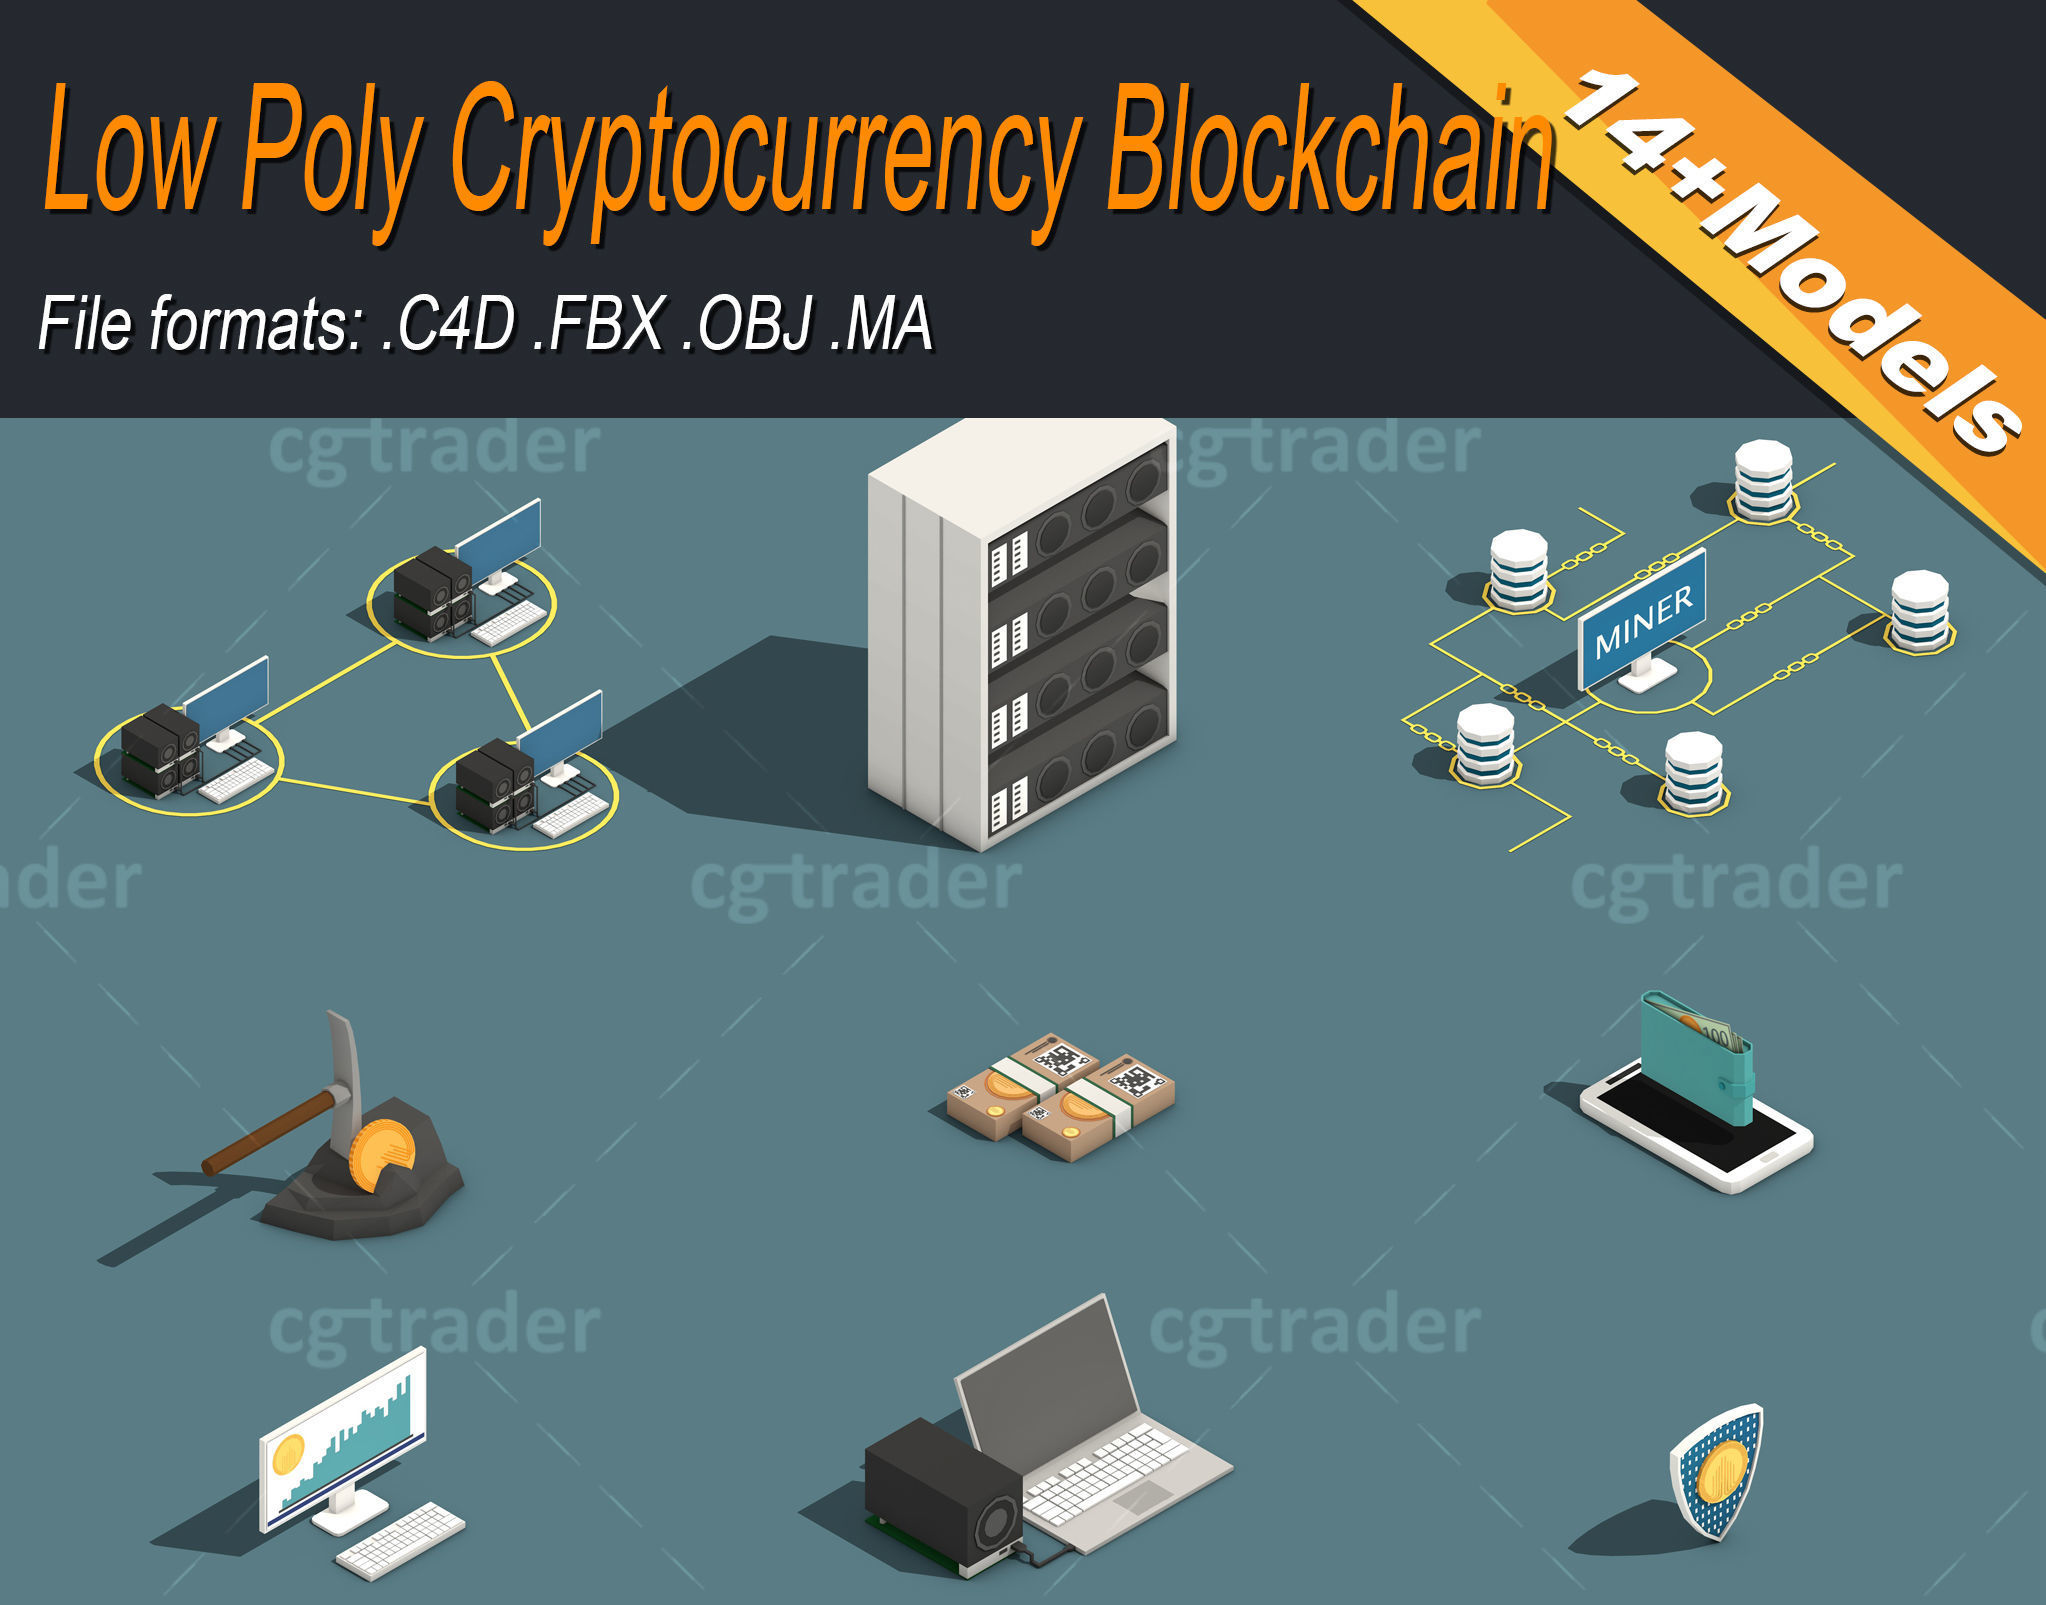 Low Poly Cryptocurrency Blockchain Pack 02